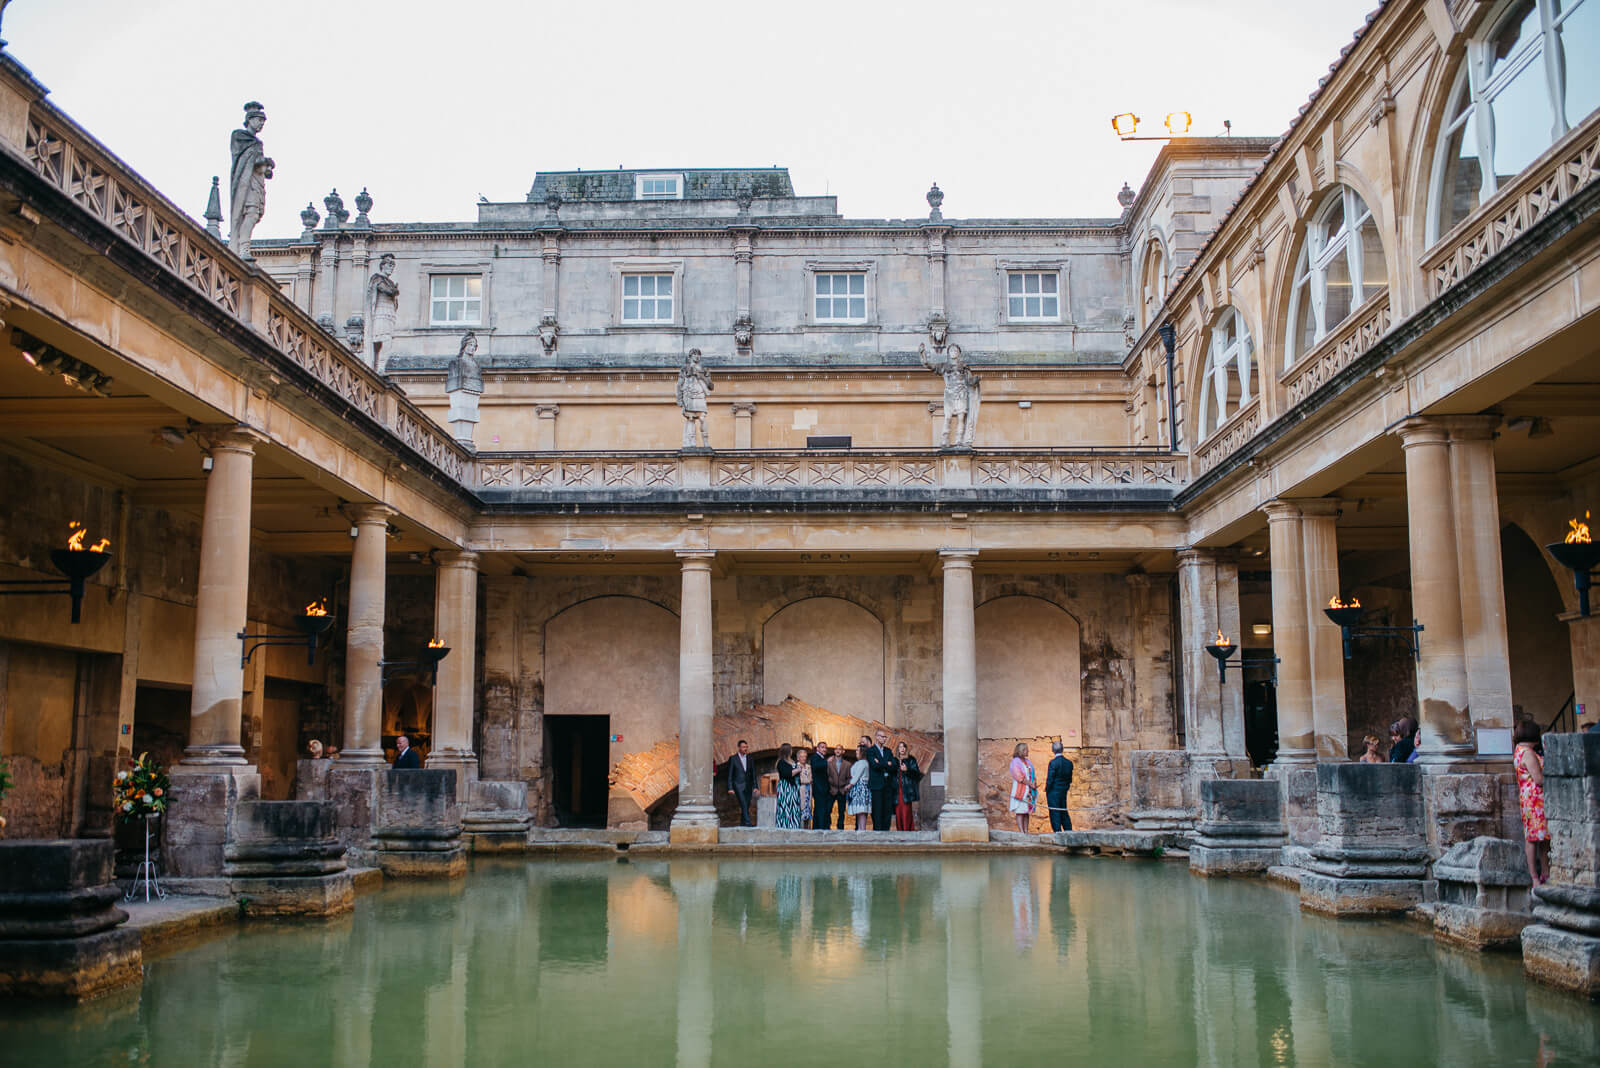 Photograph looking across the Roman Baths towards guests gathered awaiting Bride